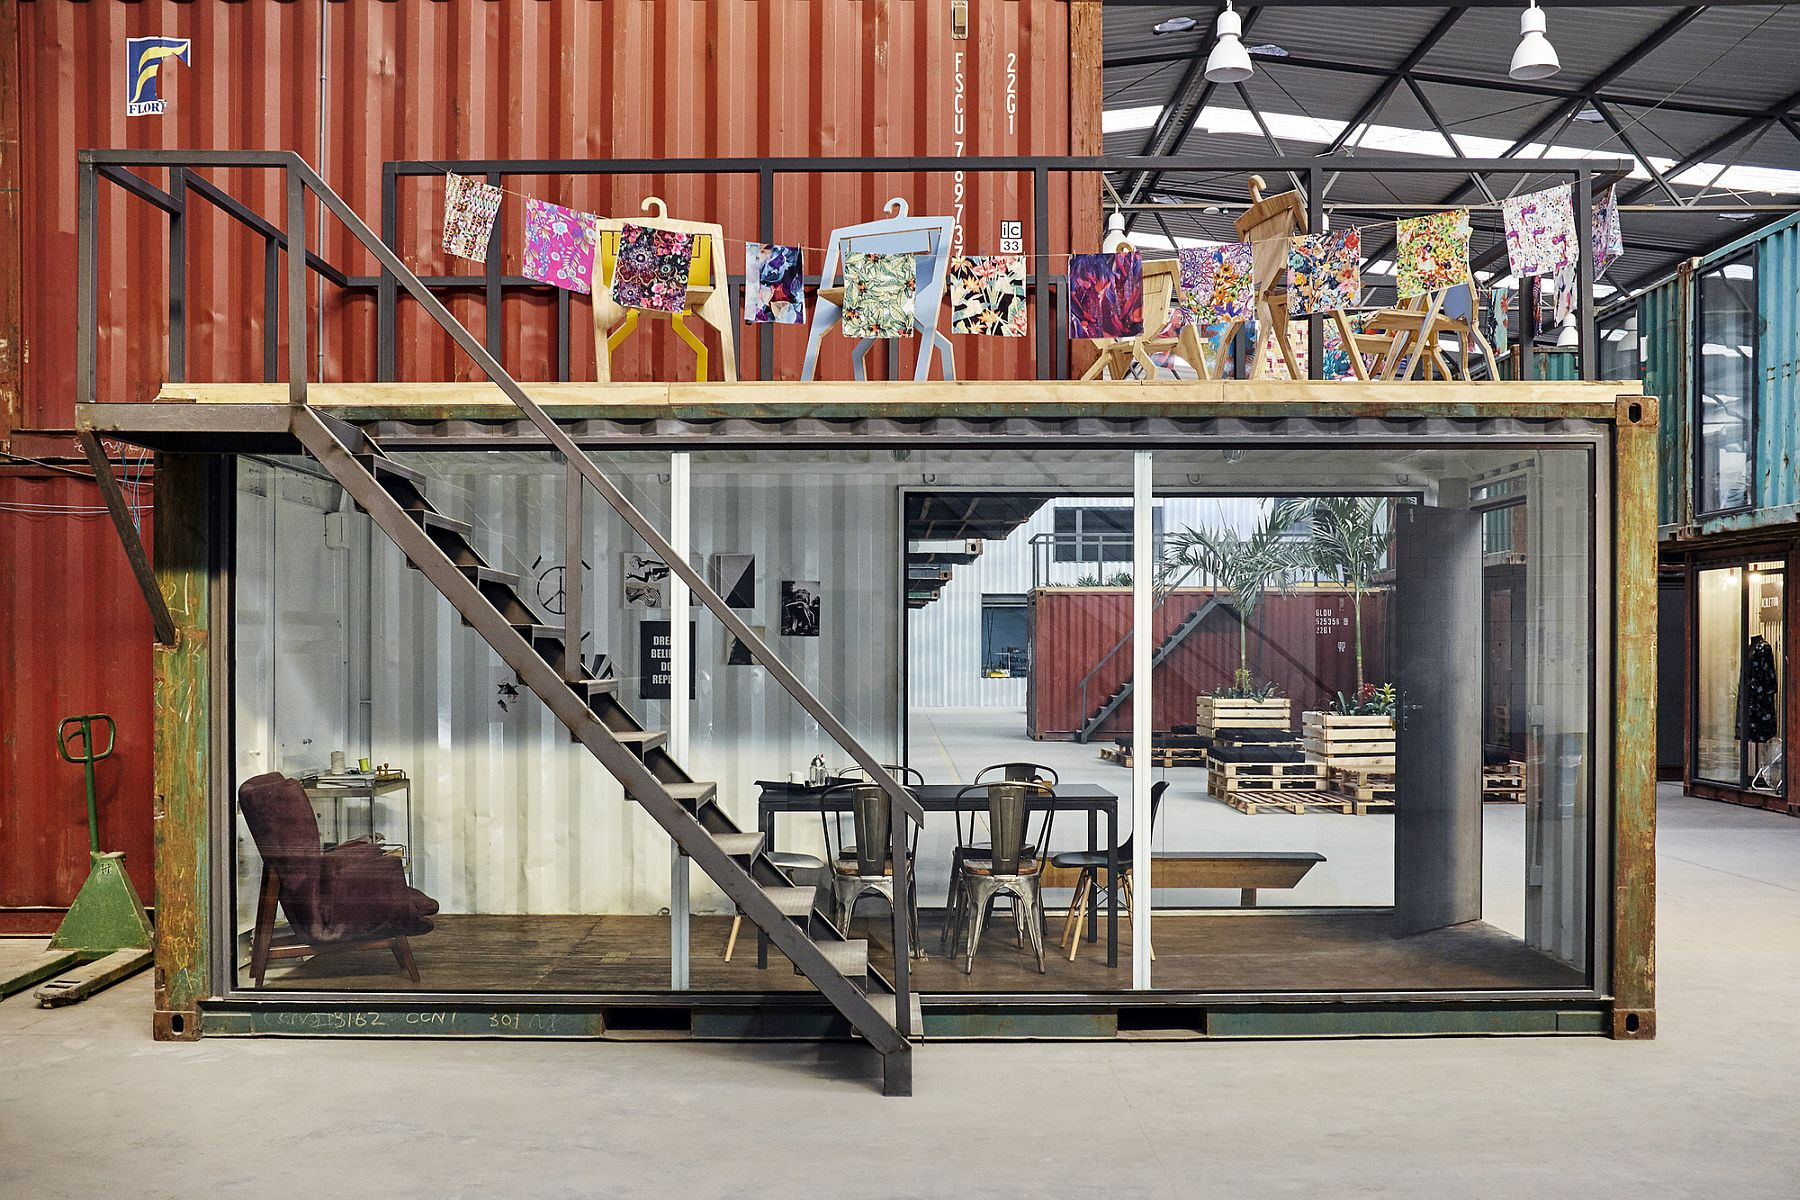 Repurposed shipping containers add to the sustainable style of the shed